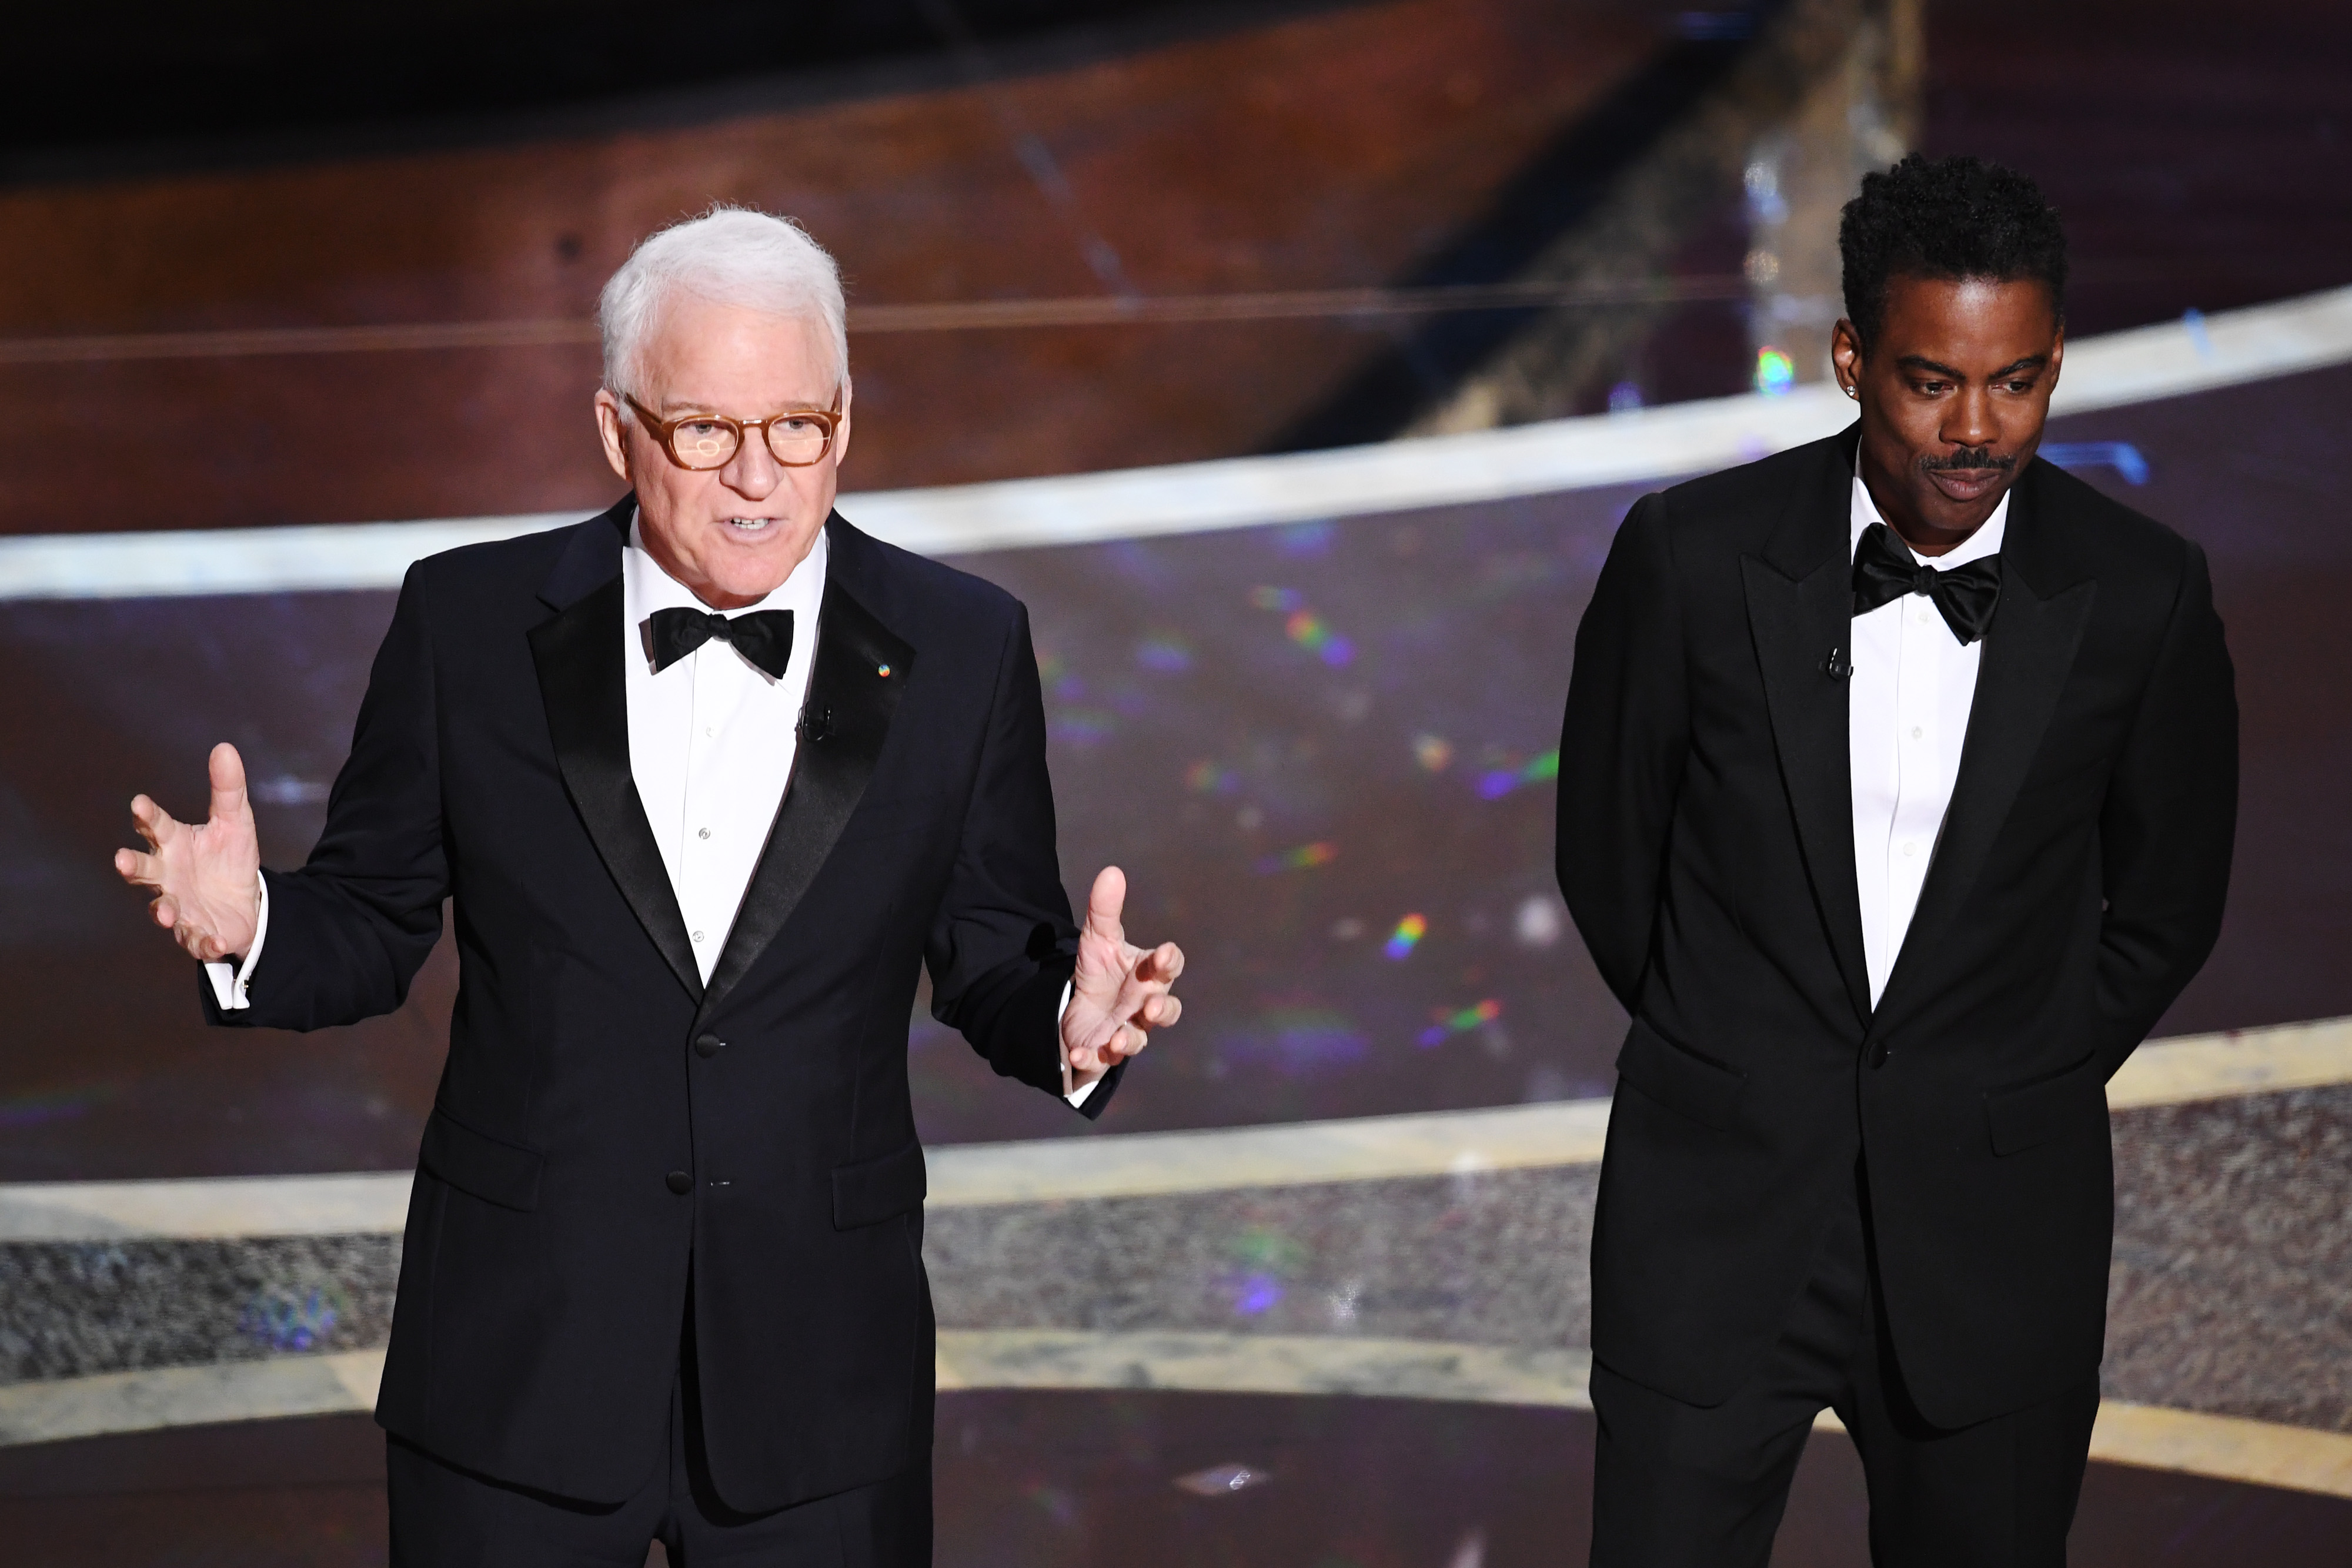 Steve Martin and Chris Rock onstage at the Oscars.